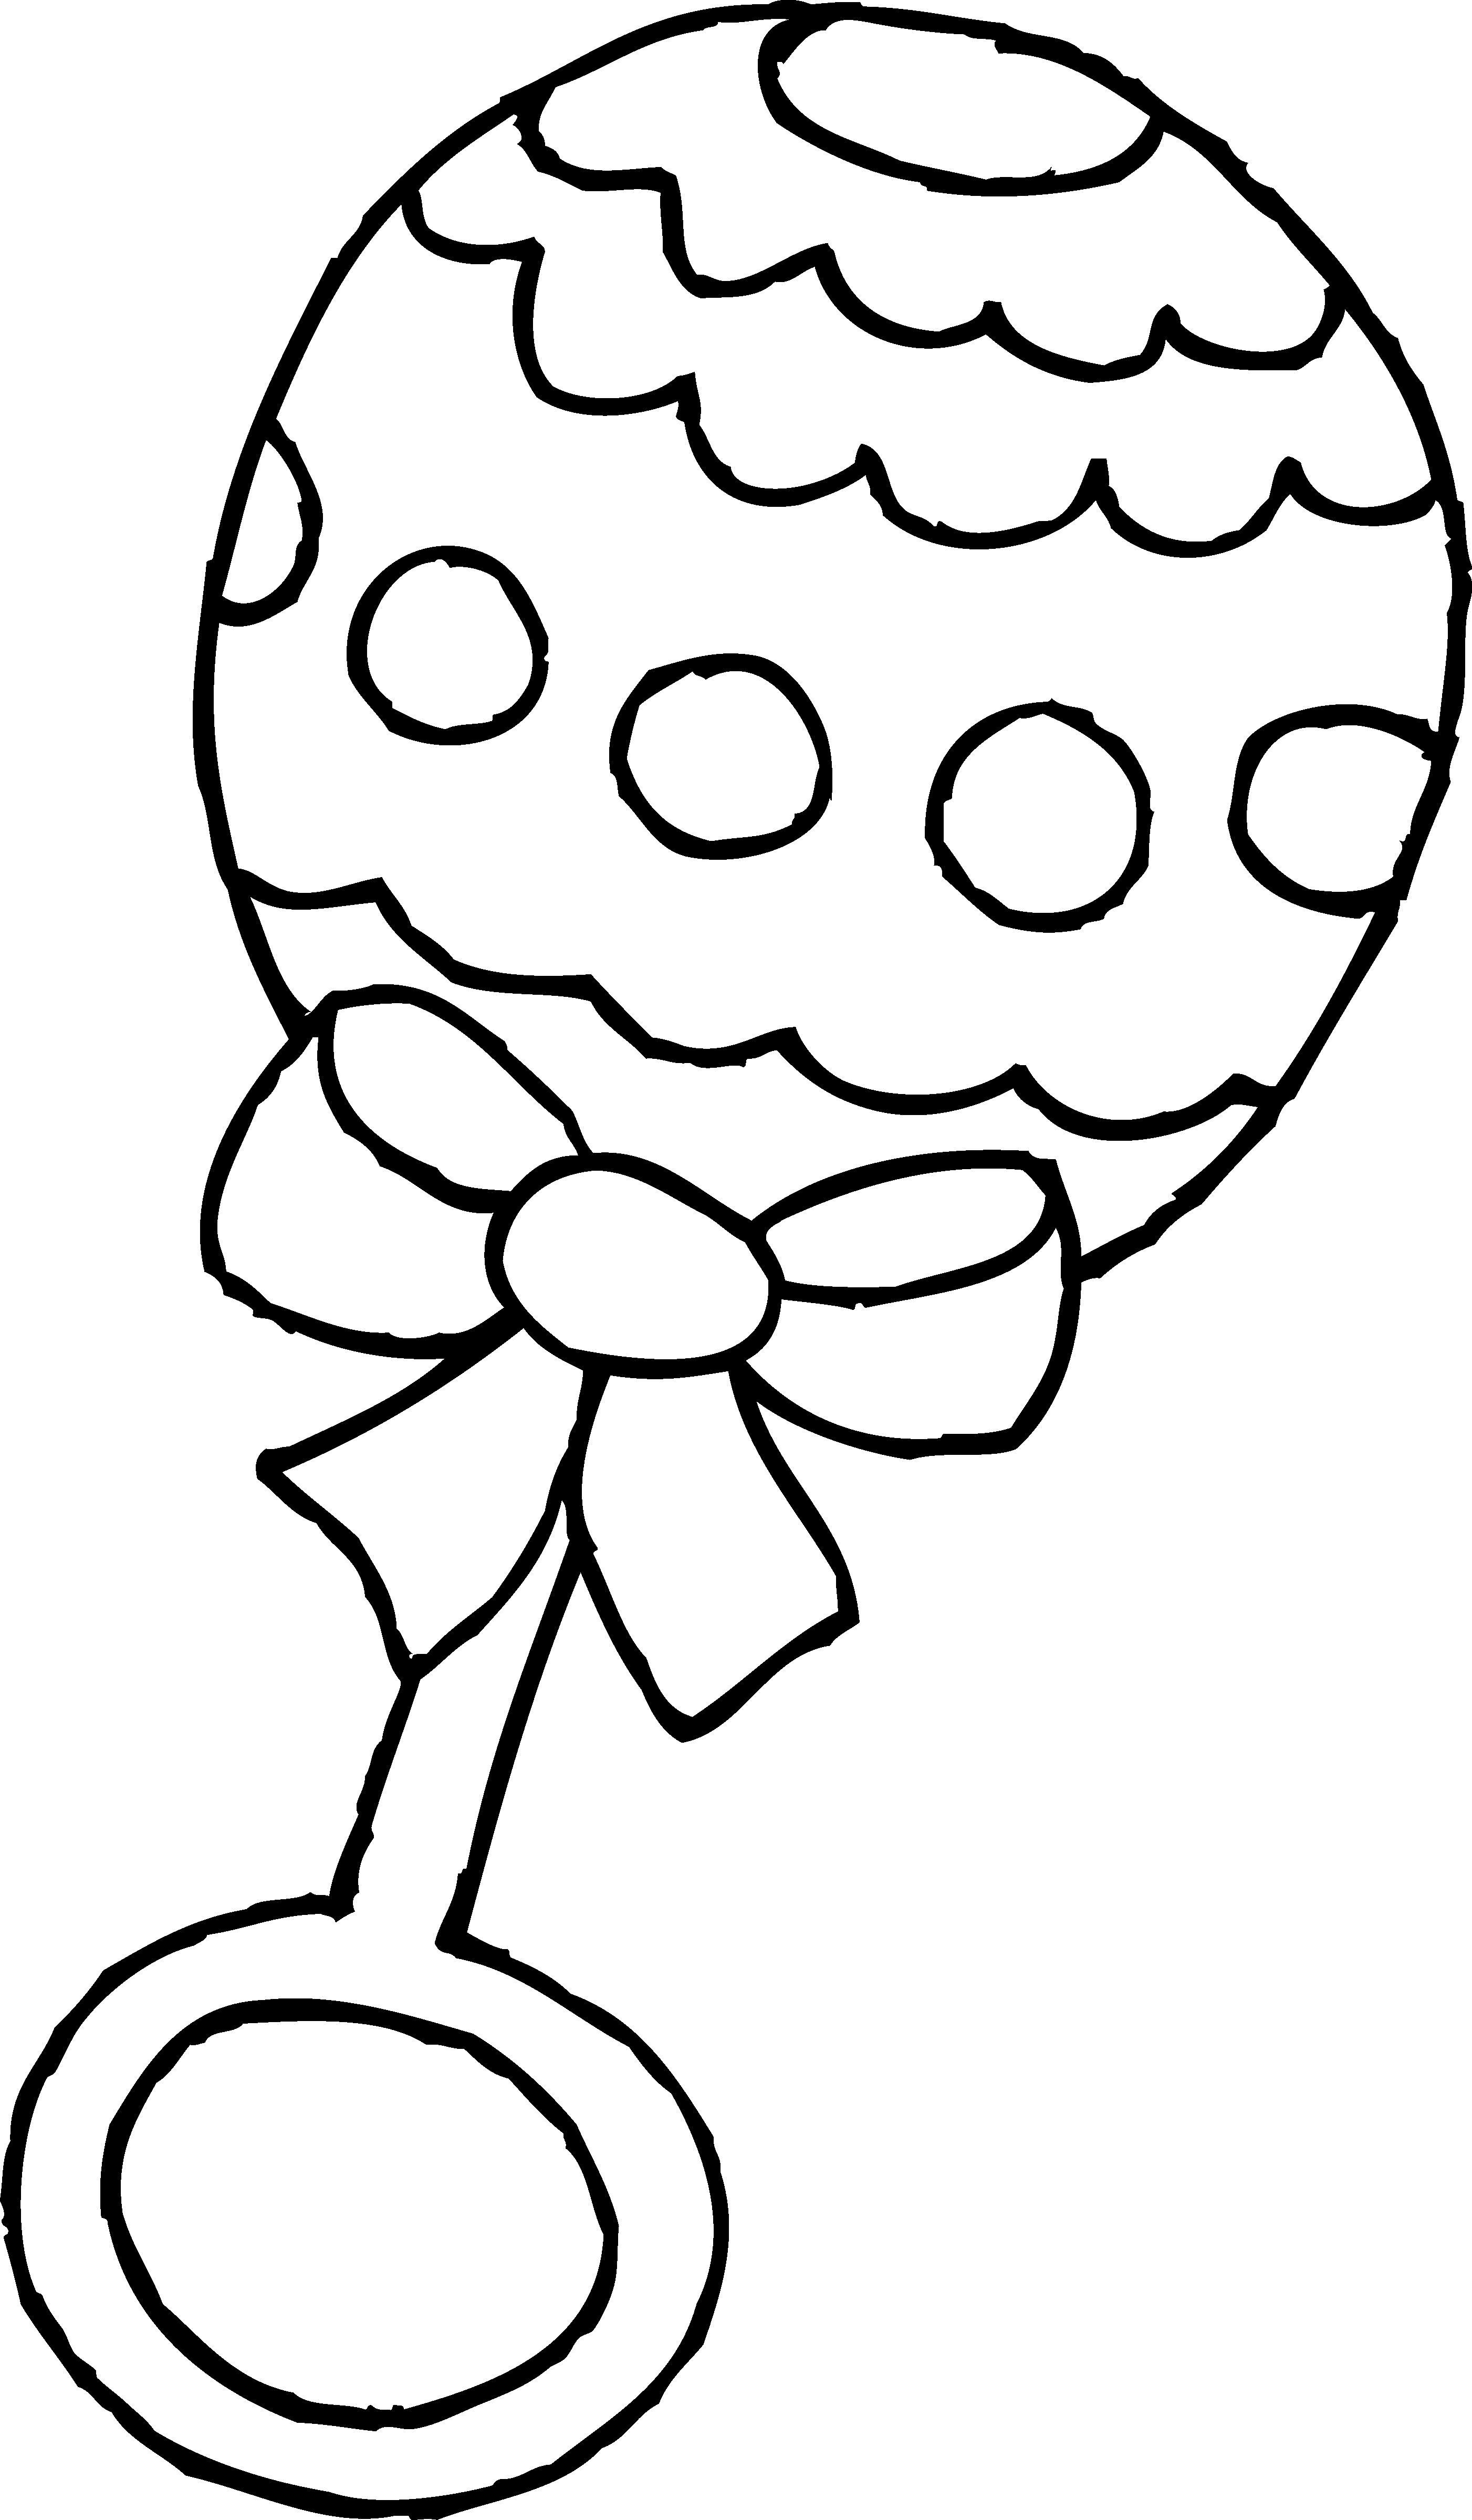 2803x4798 Baby Rattle Clip Art Black And White All Things Cricut! Baby